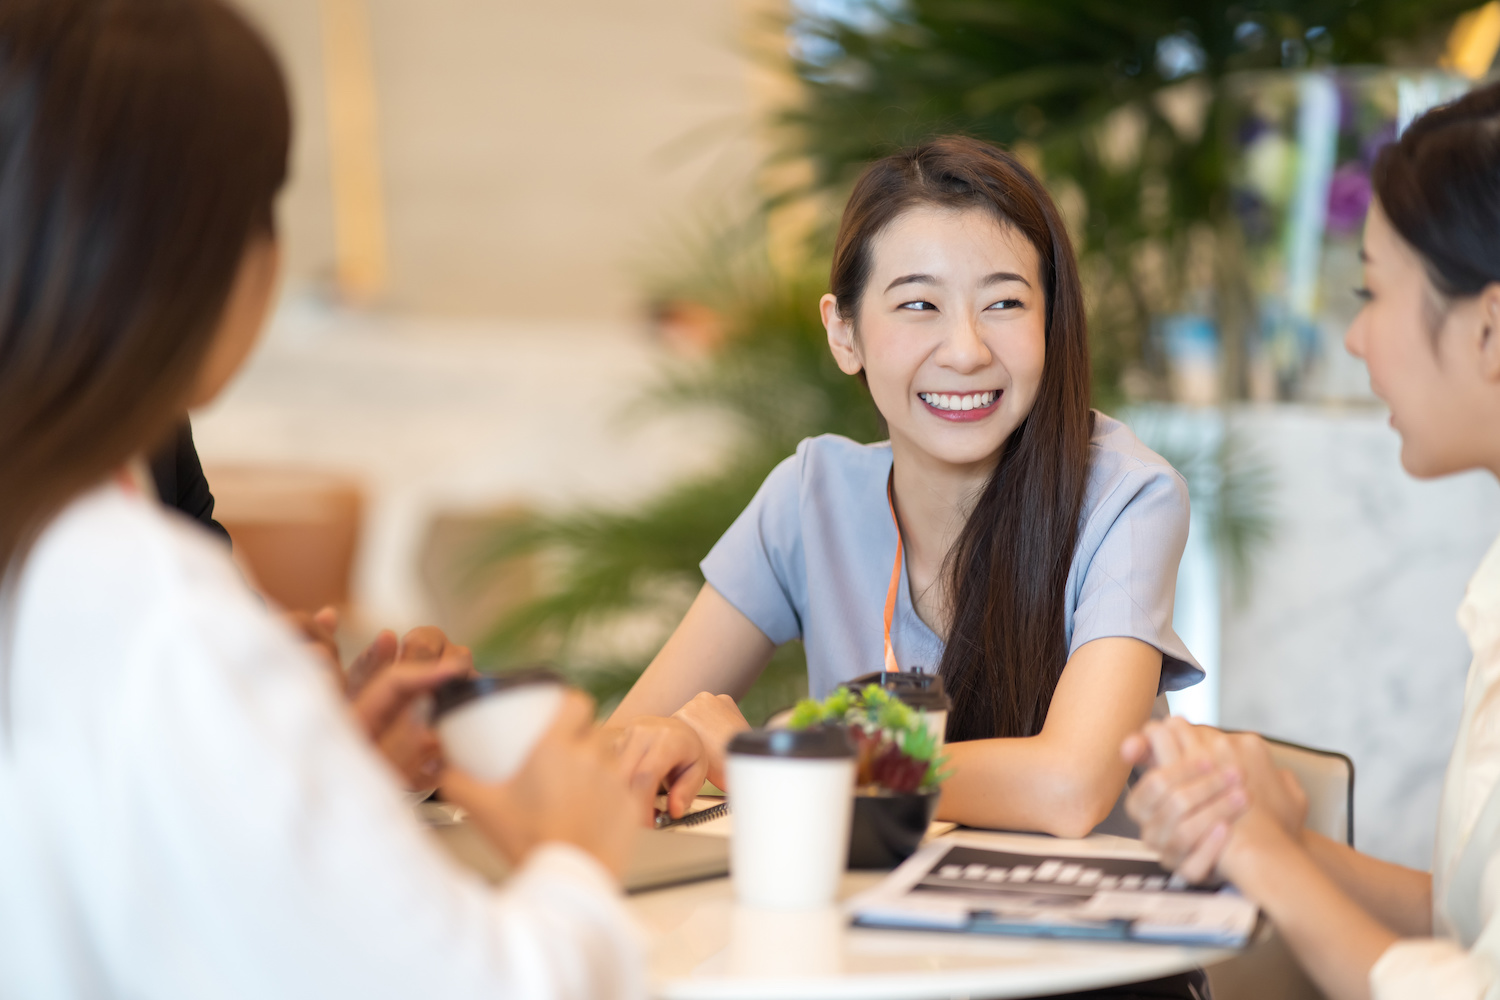 Onboarding best practices: Woman smiles while at lunch with co-workers